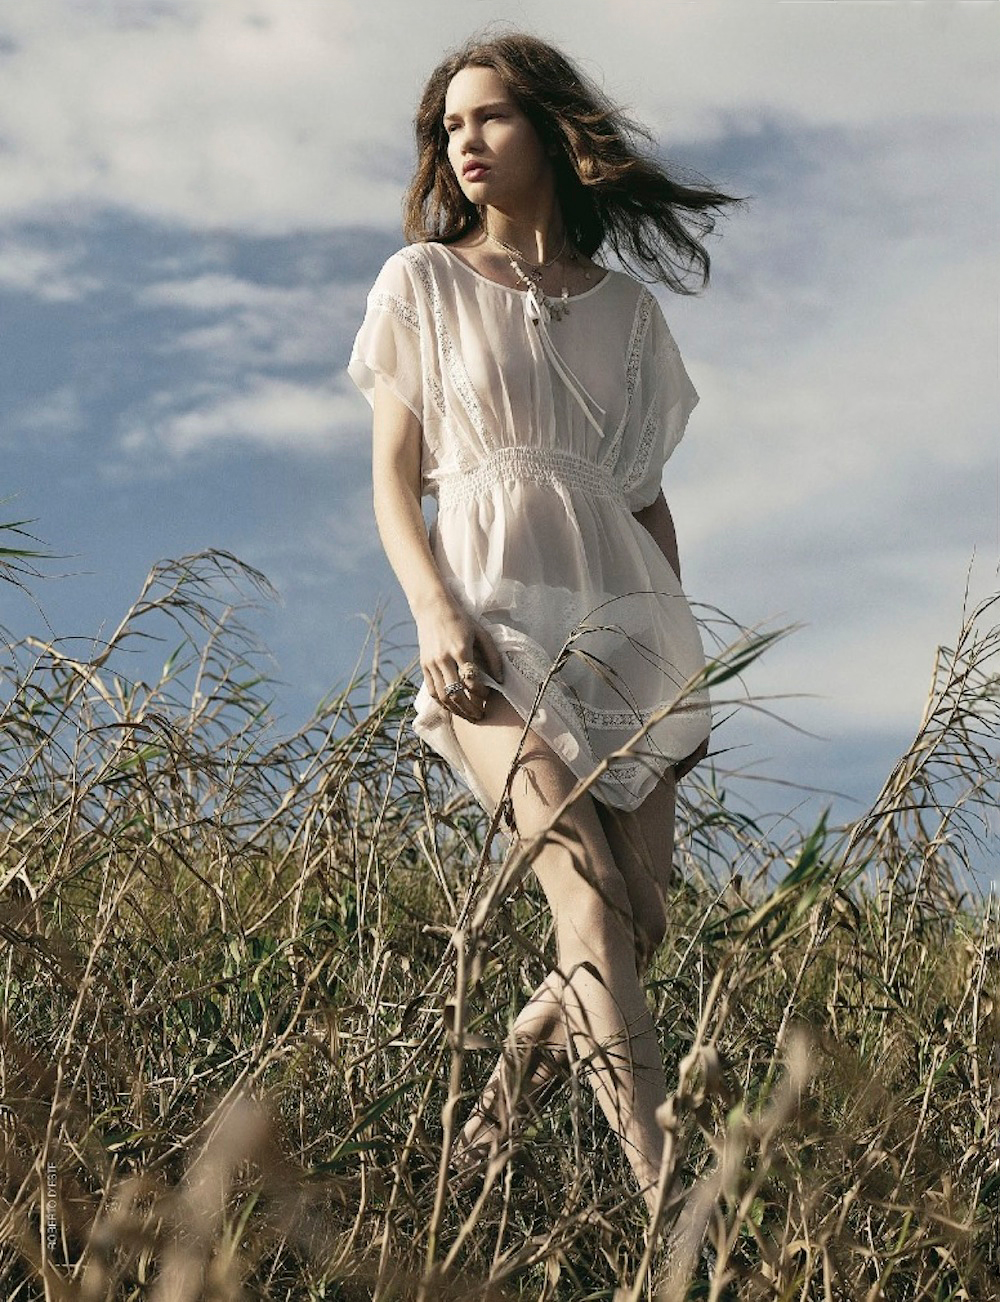 Elena Lomkova in Cosi naturale / Grazia Italia July 2012 (photography: Roberto D'este, styling: Santa Bevacqua) via fashioned by love british fashion blog